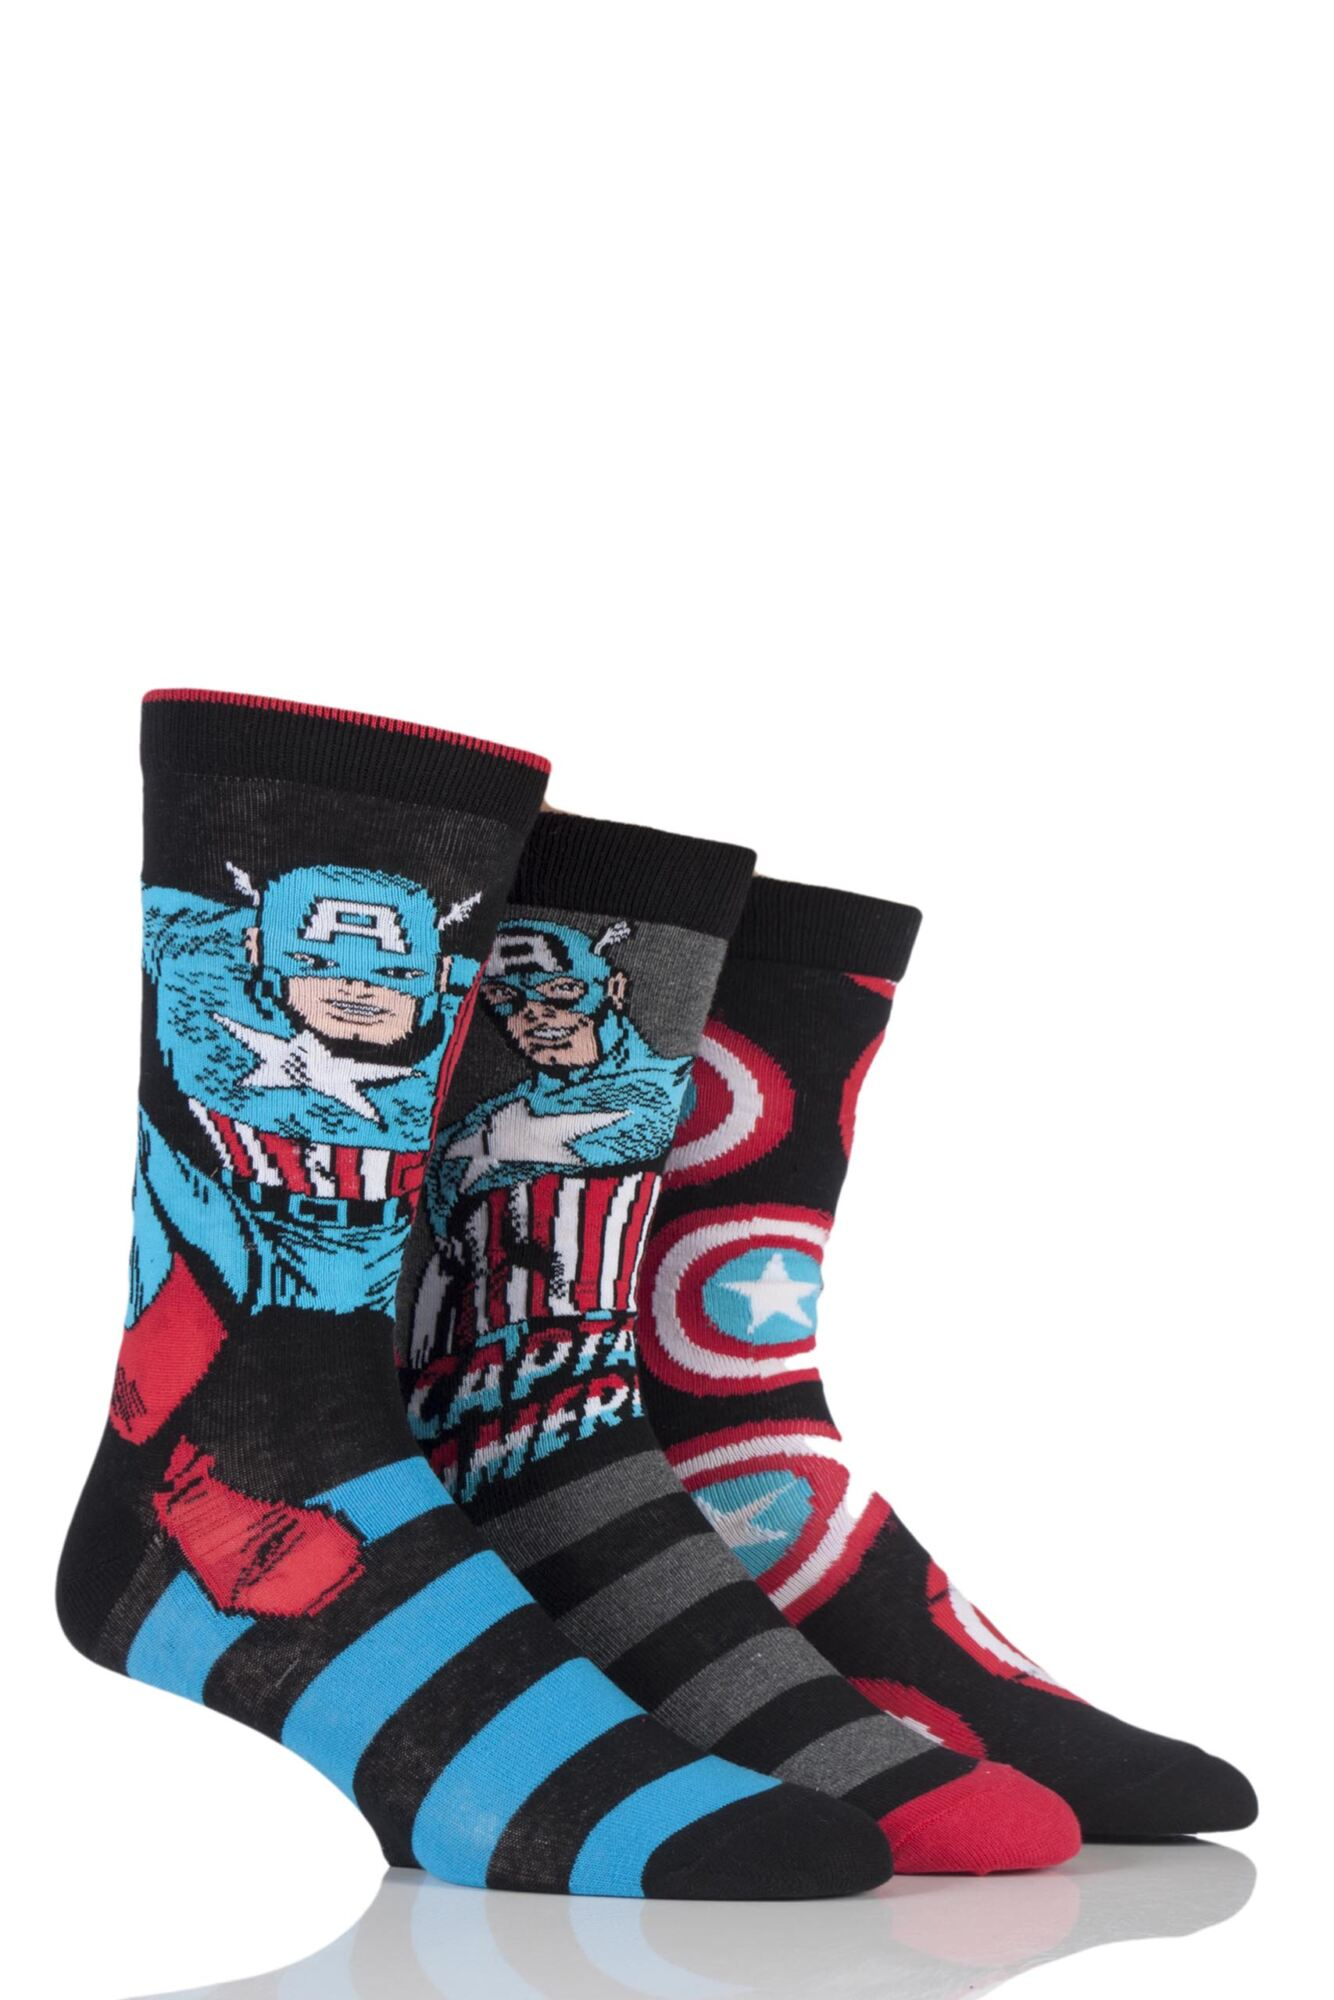 3 Pair Marvel Captain America Mix Cotton Socks Men's - Film & TV Characters